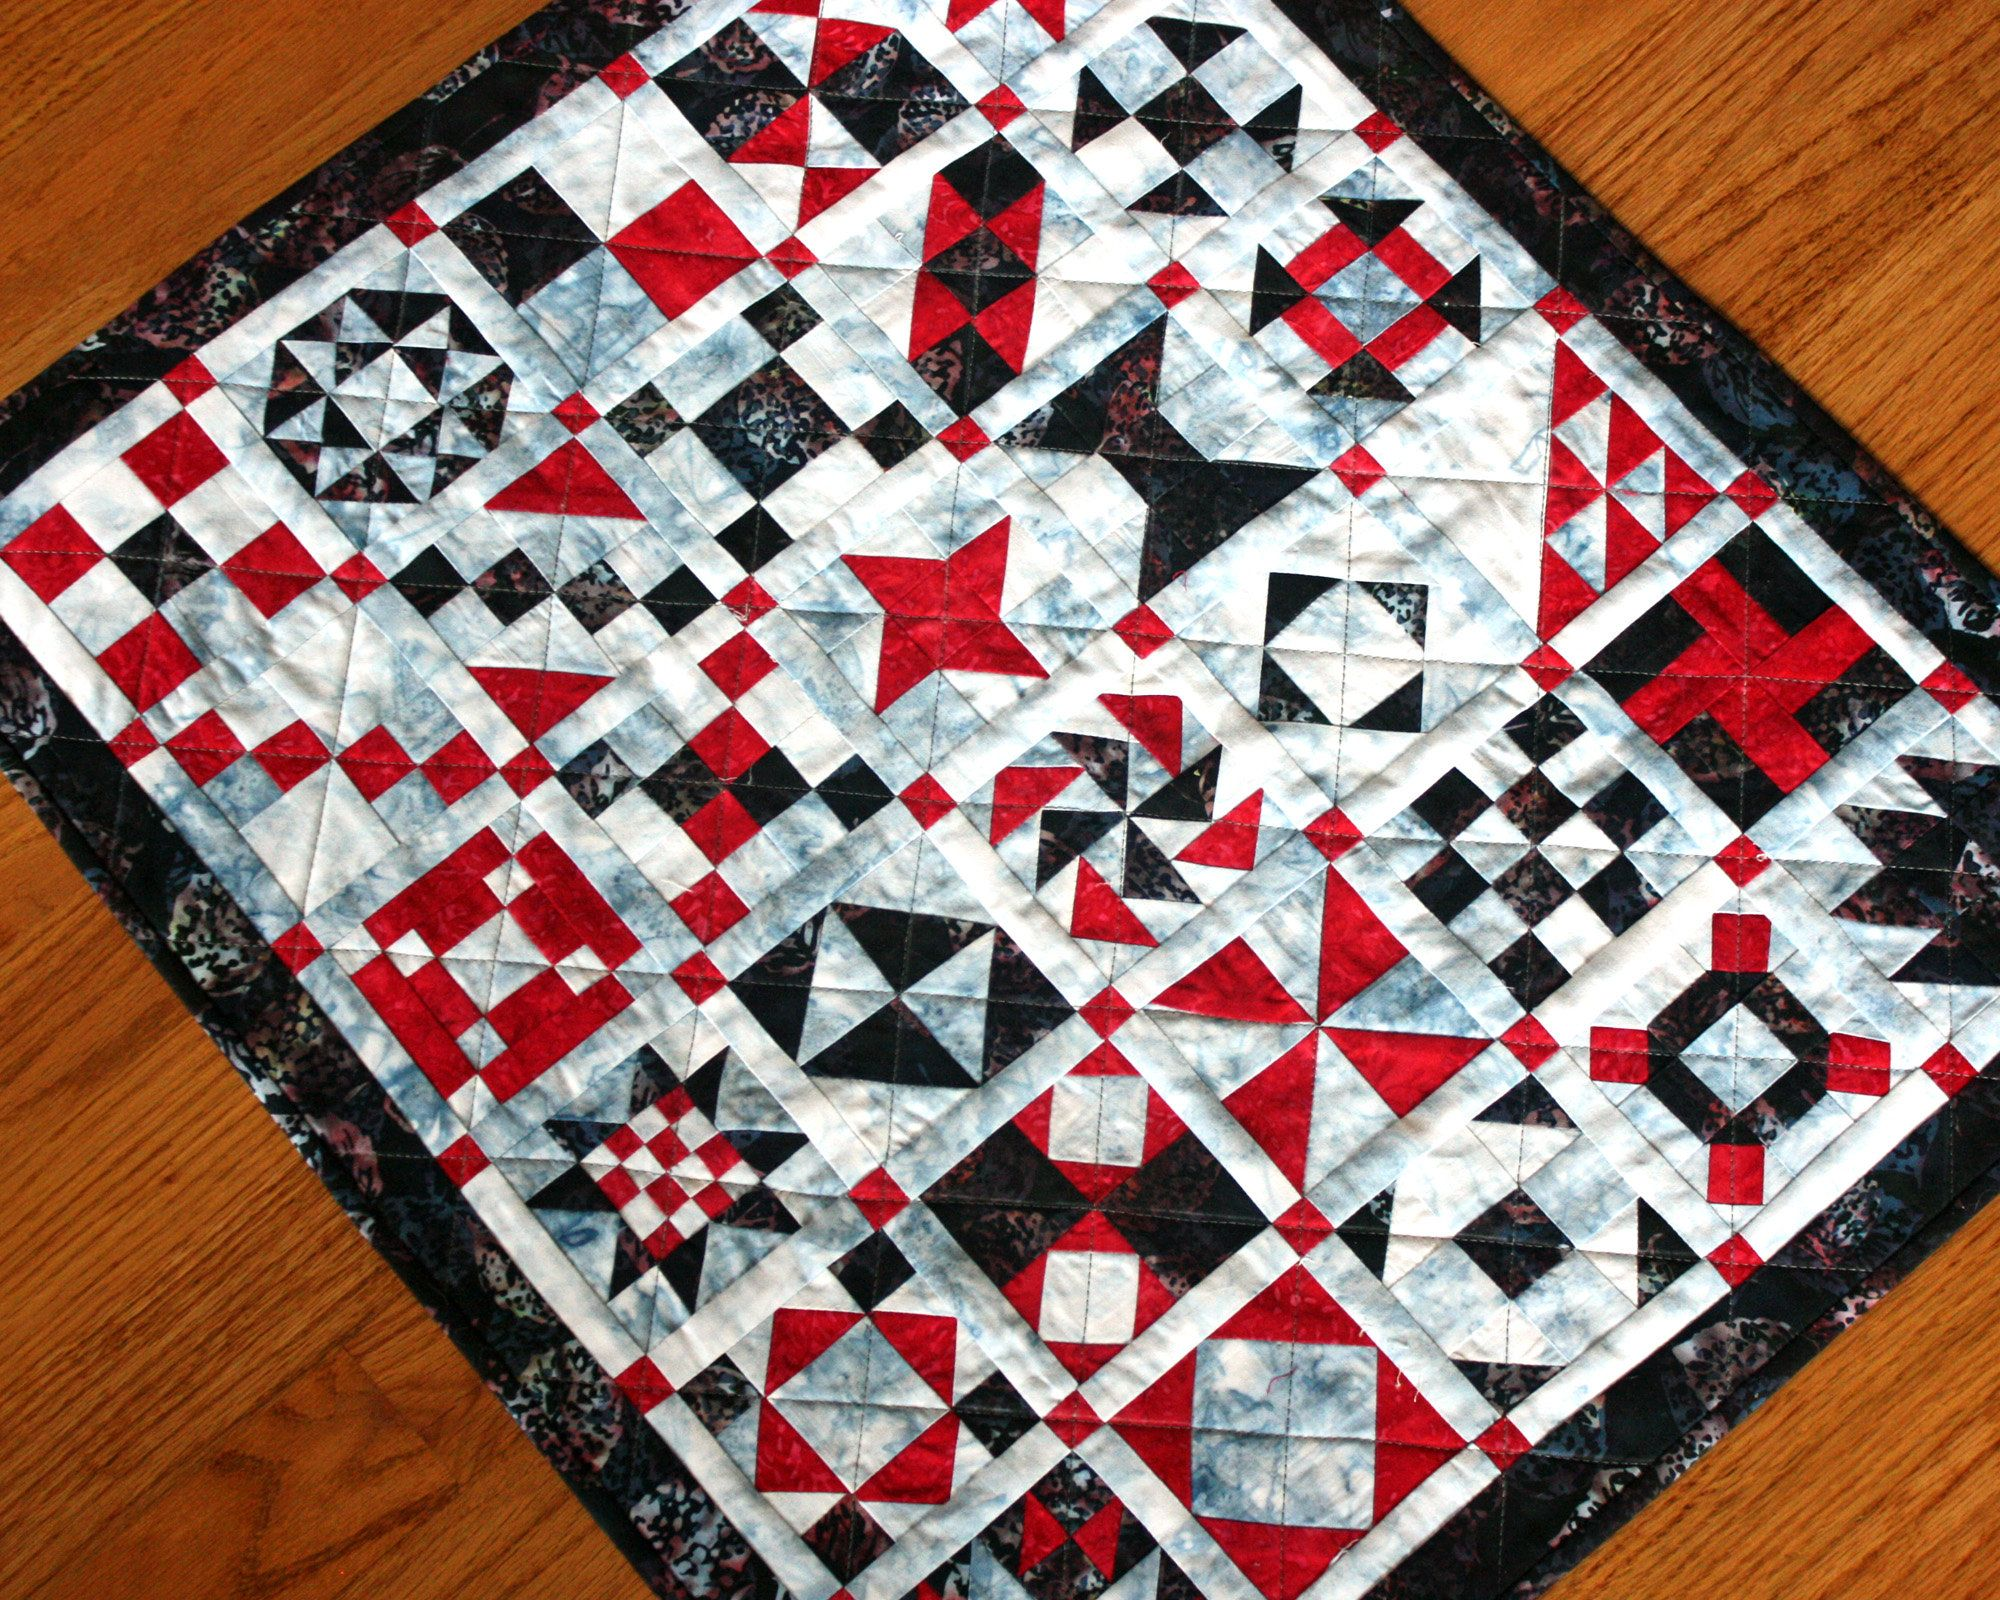 Quilted Block Sampler mini quilt wall hanging 24 x 21 inches   Etsy